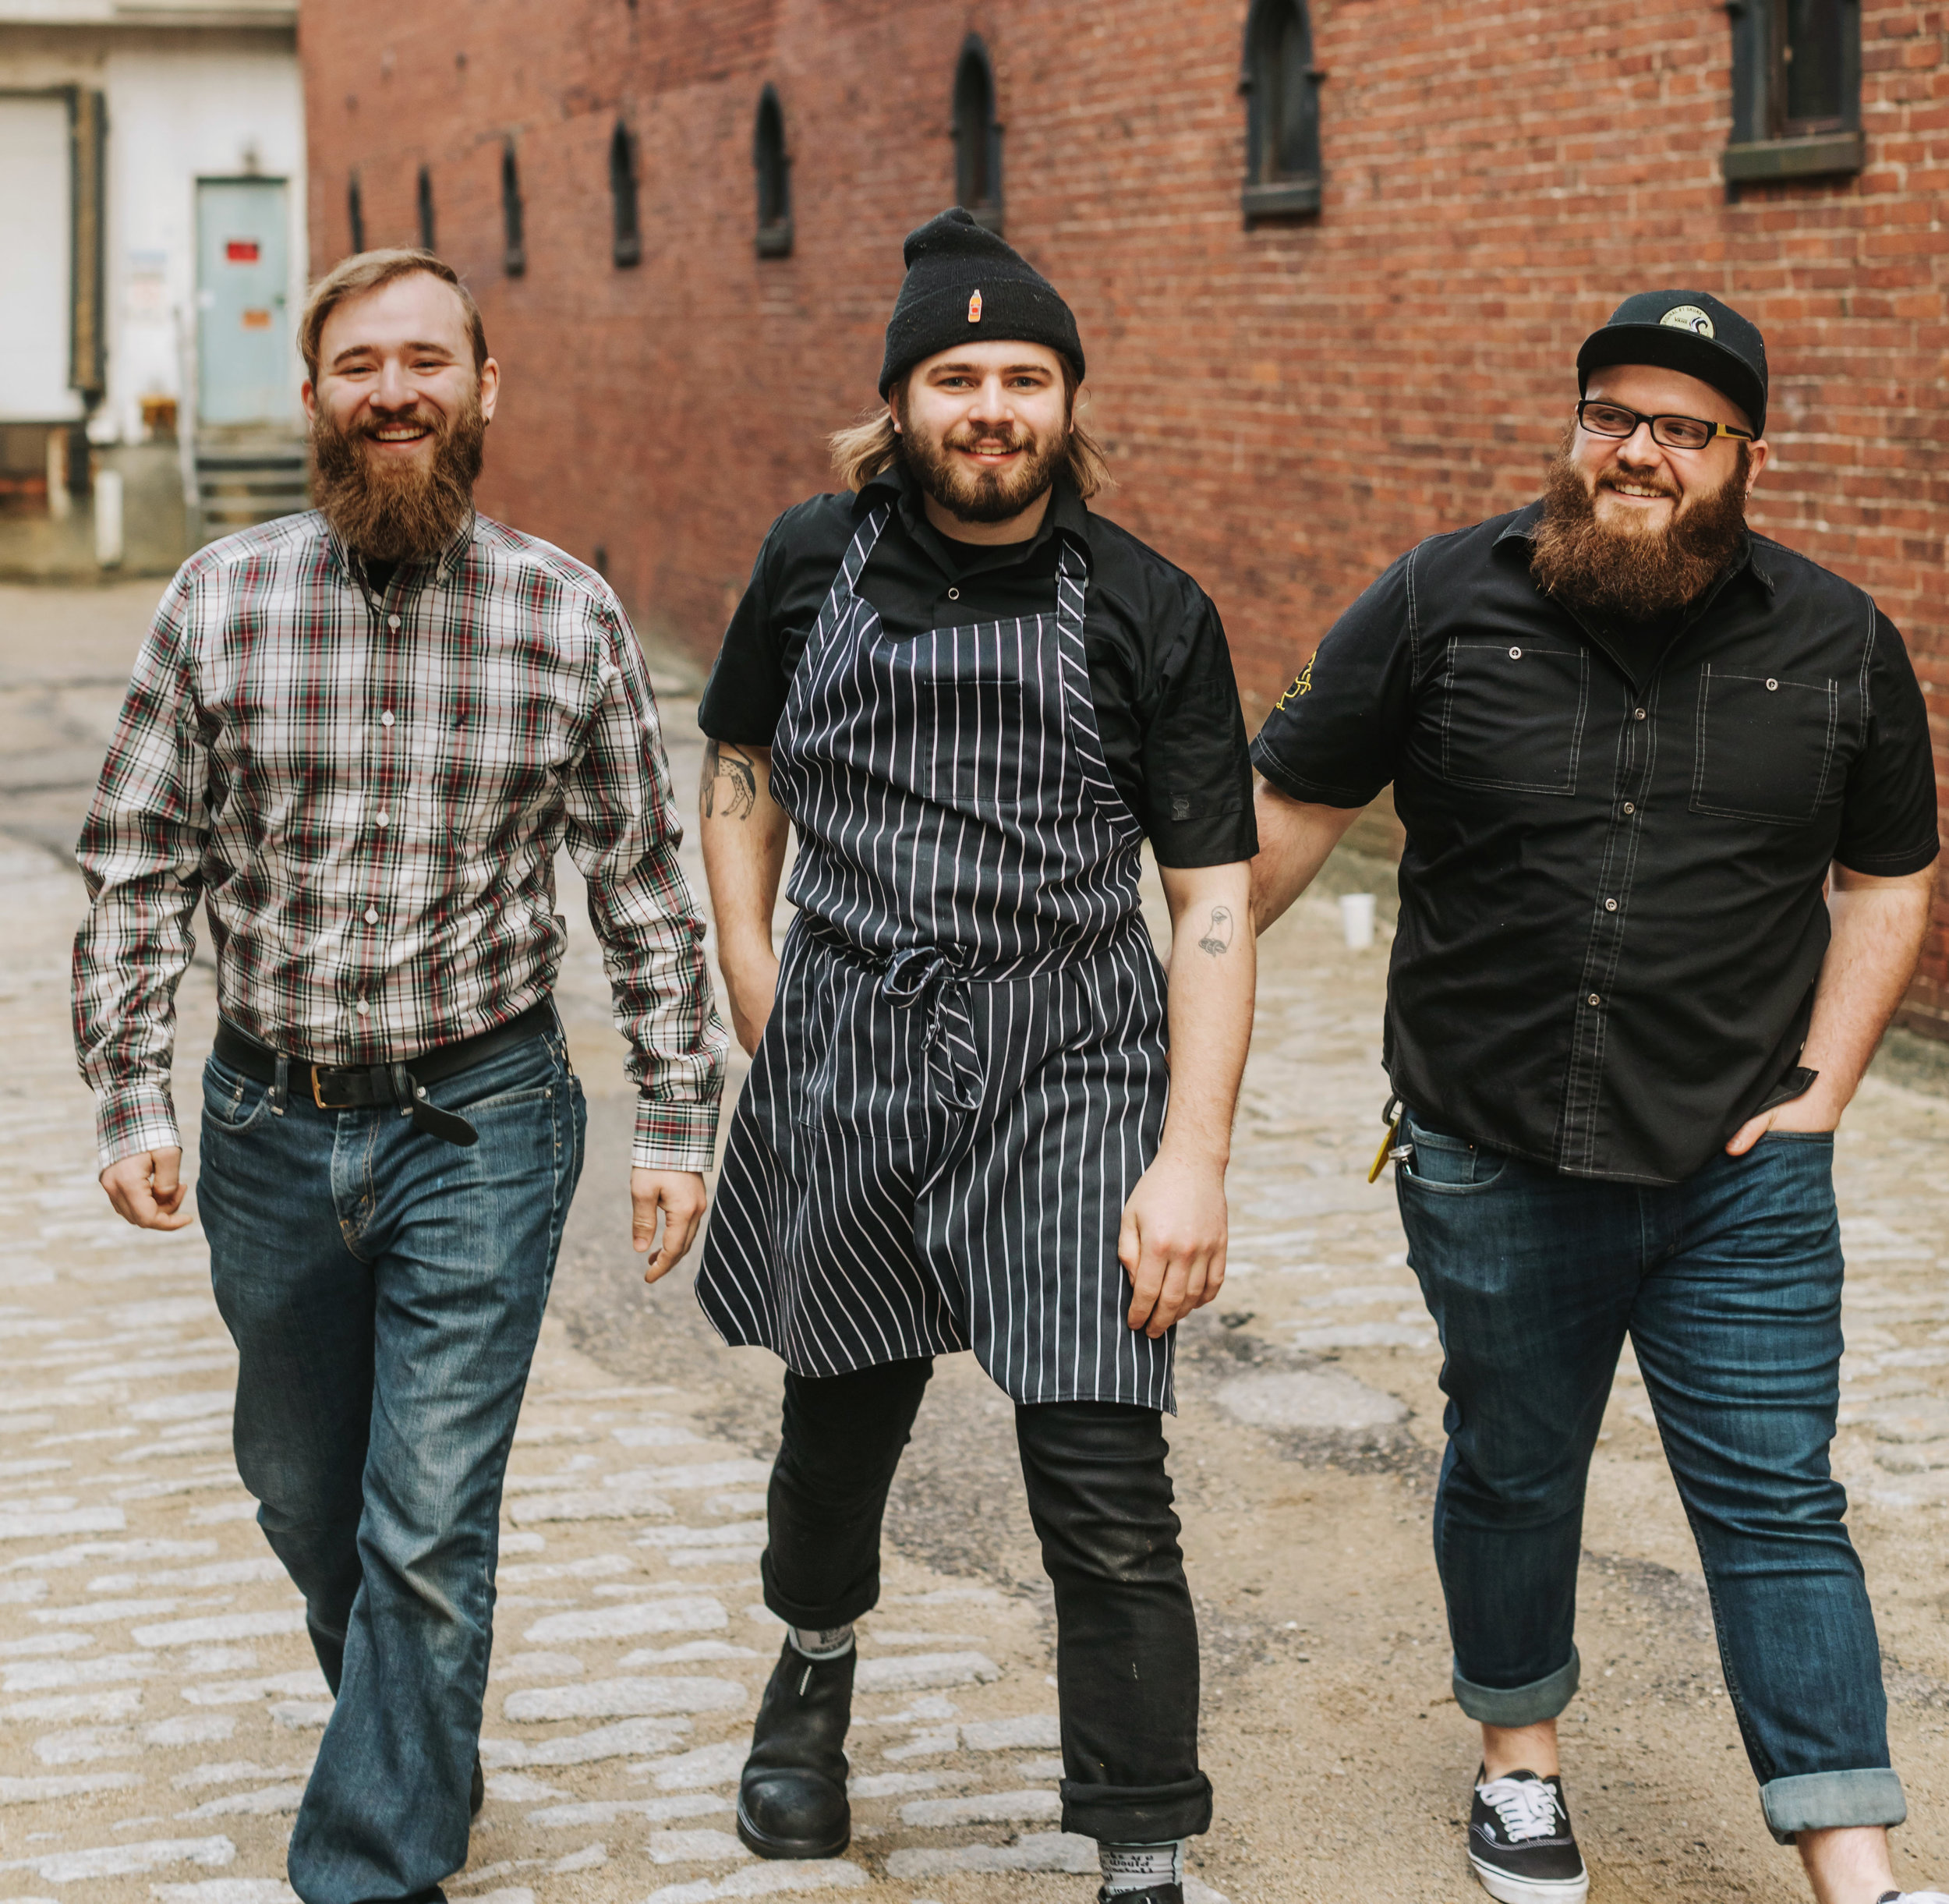 The three Amigos - Brothers- Cousins - Cameron - General Manager / Connor - Sous Chef - Artist of the Mural / Kevin - Chef